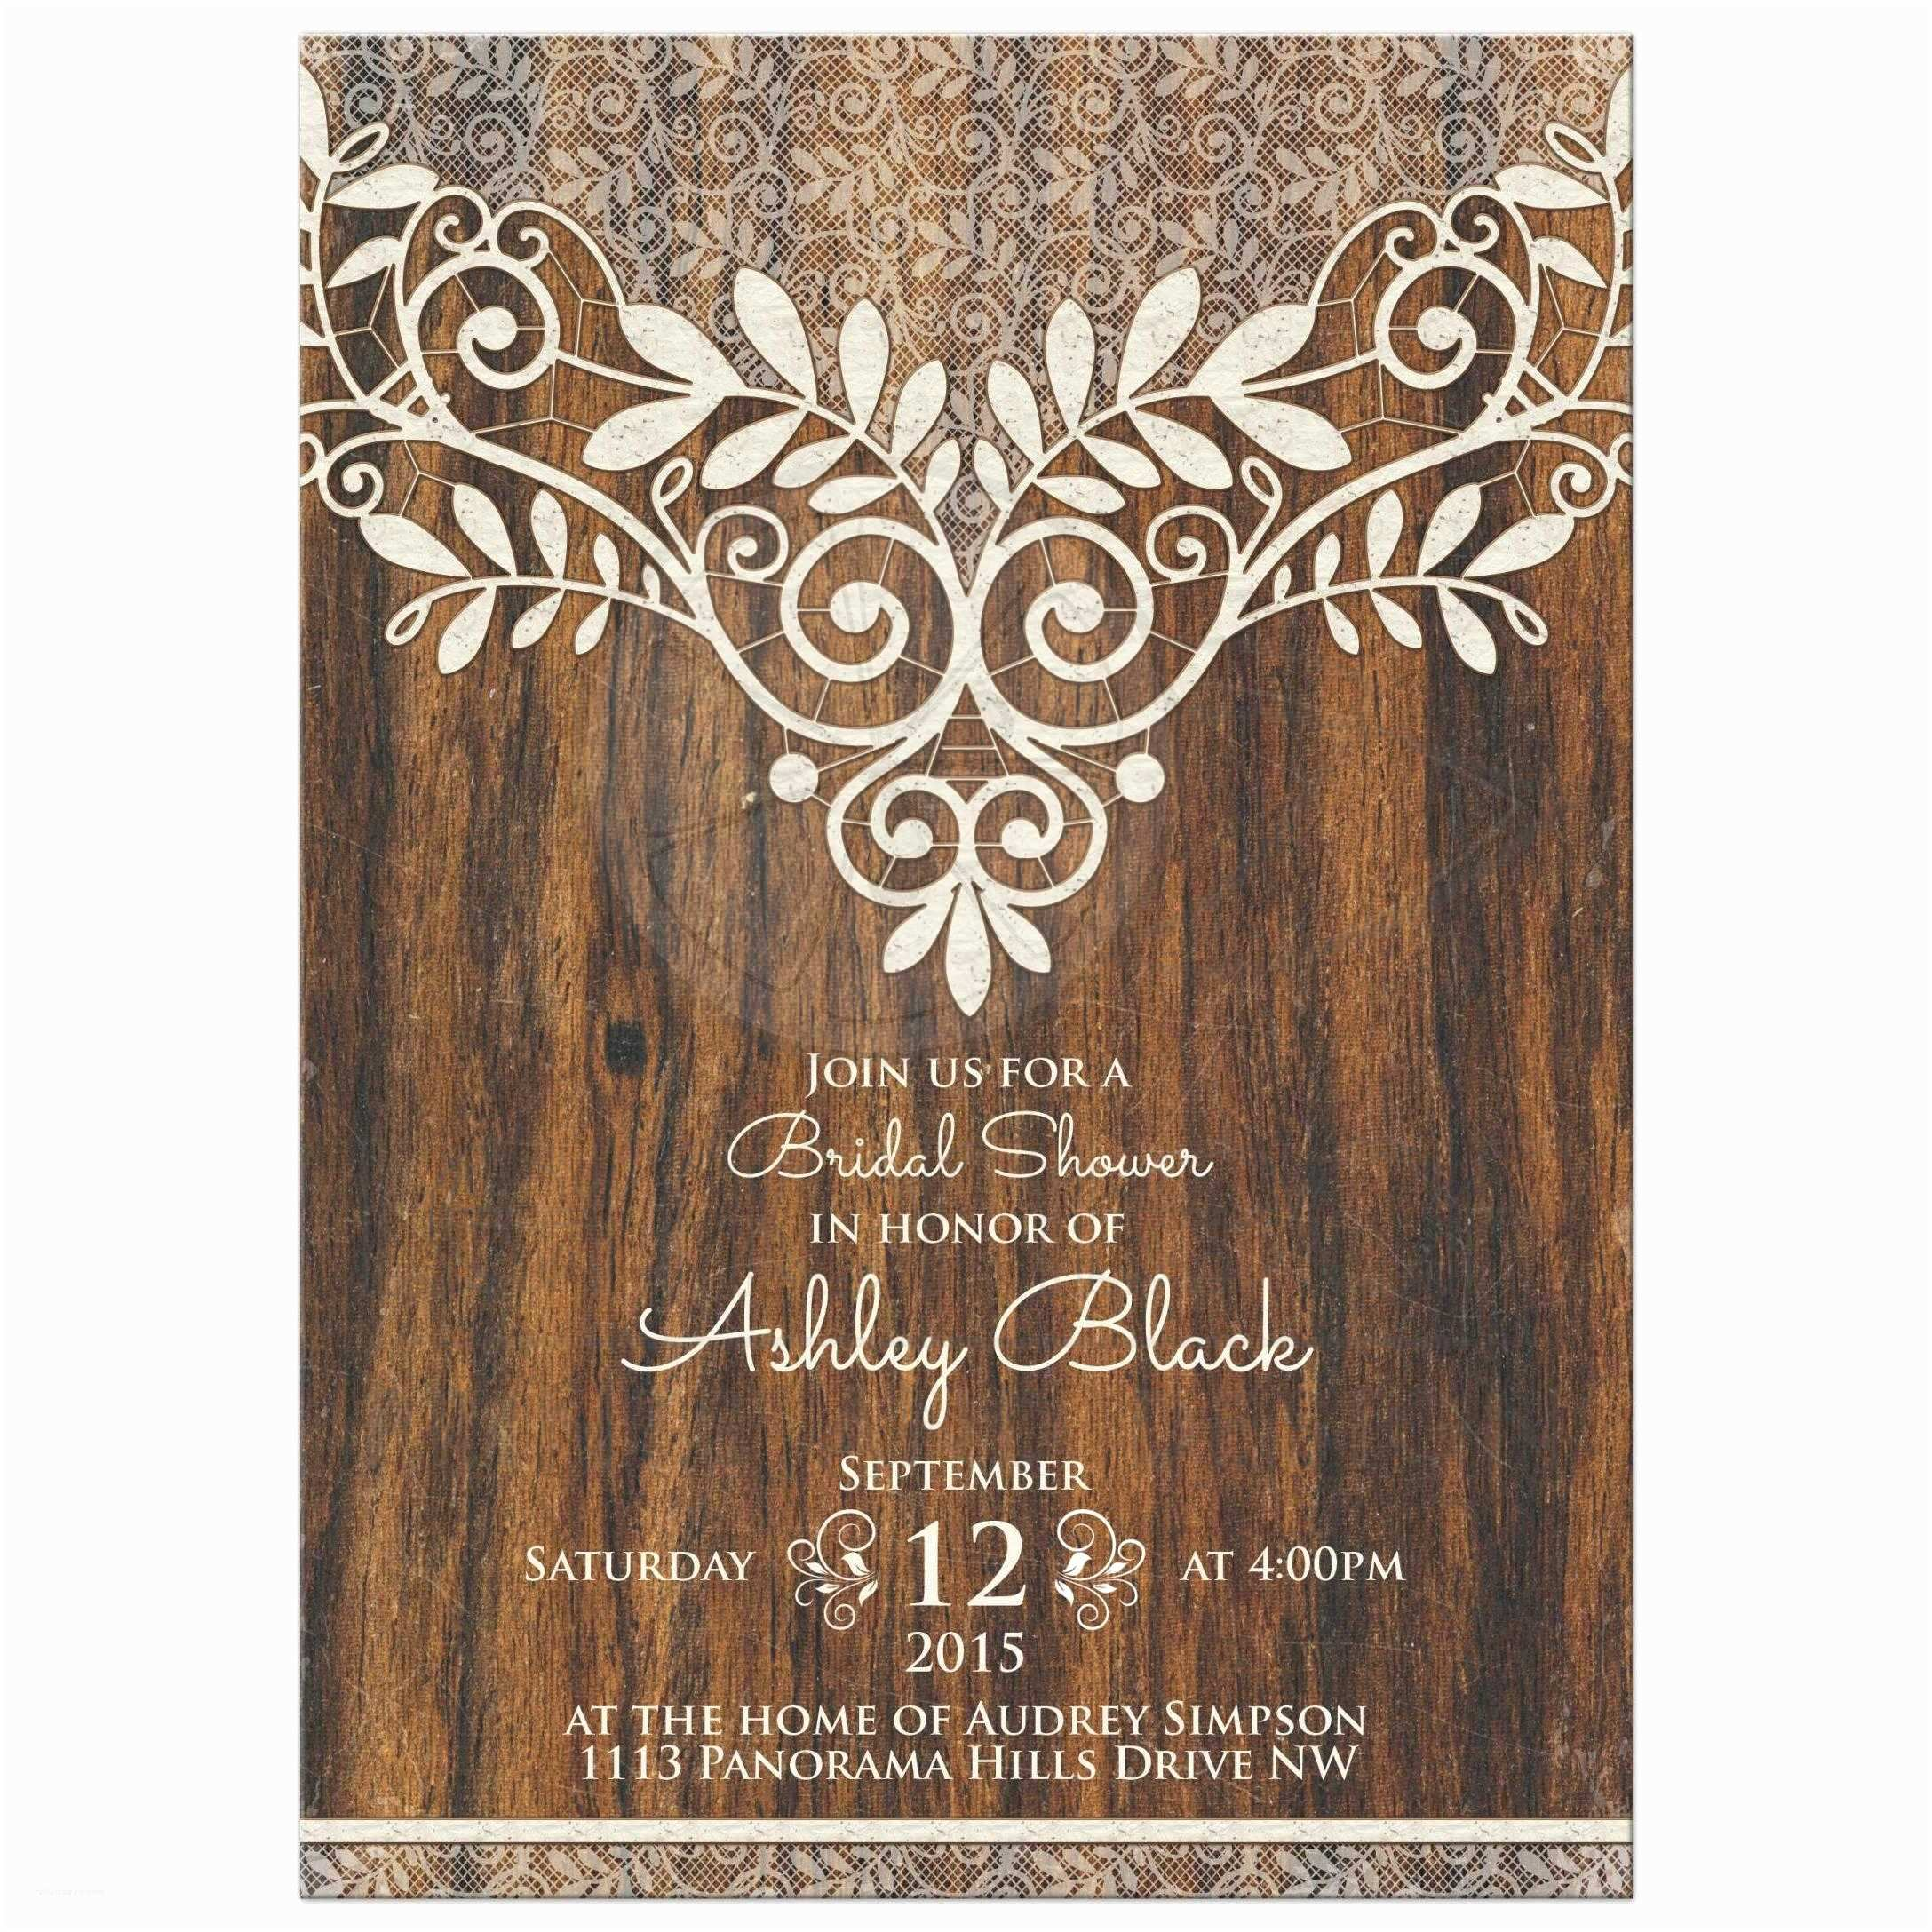 Lace Wood Wedding Invitations Rustic Bridal Shower Invitation Ivory Lace Wood